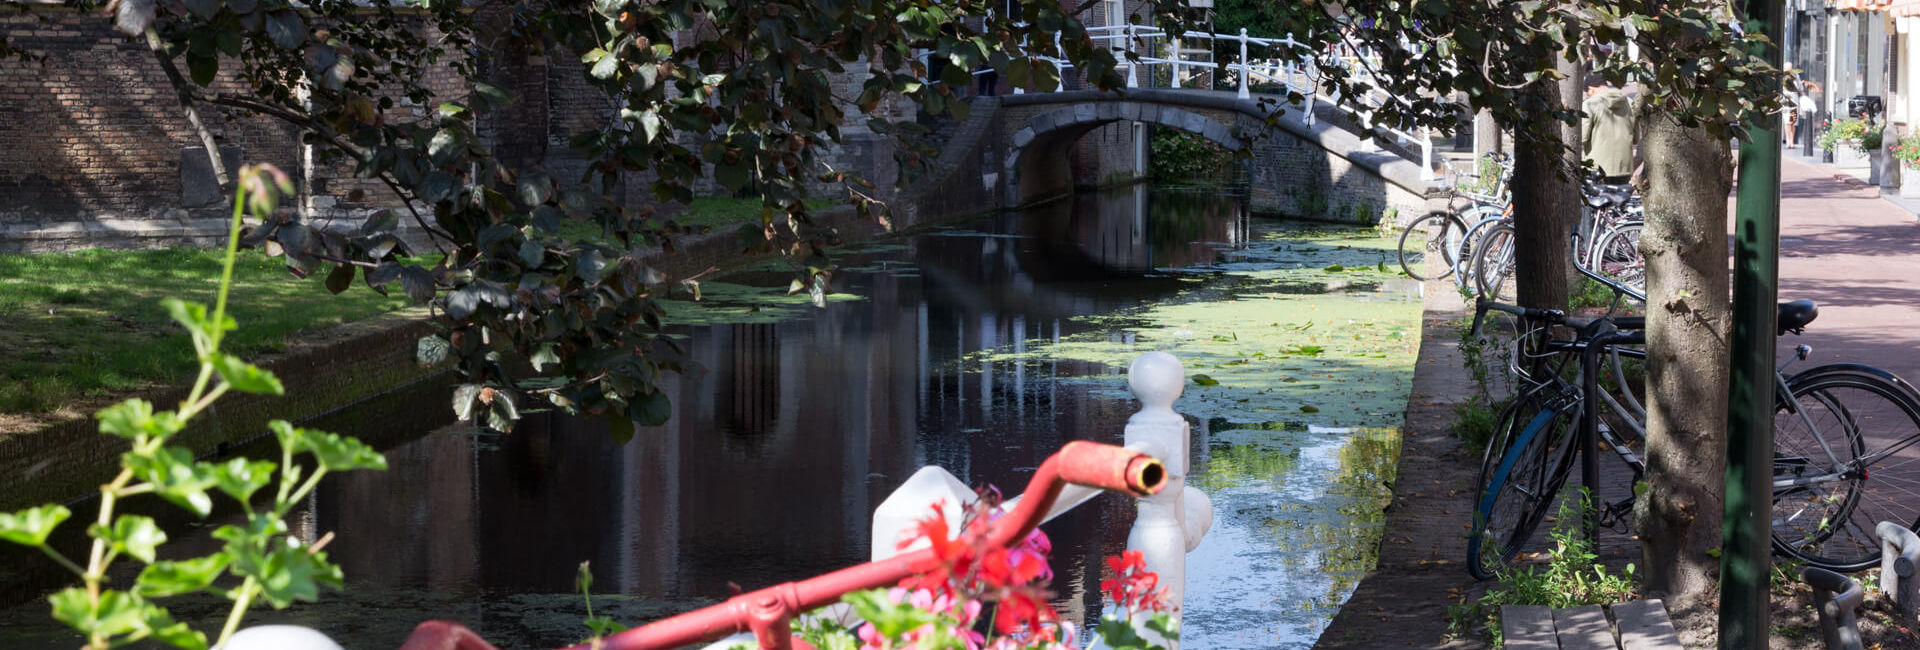 Canal in Delft near The New Church - Boat Puzzle Hunt